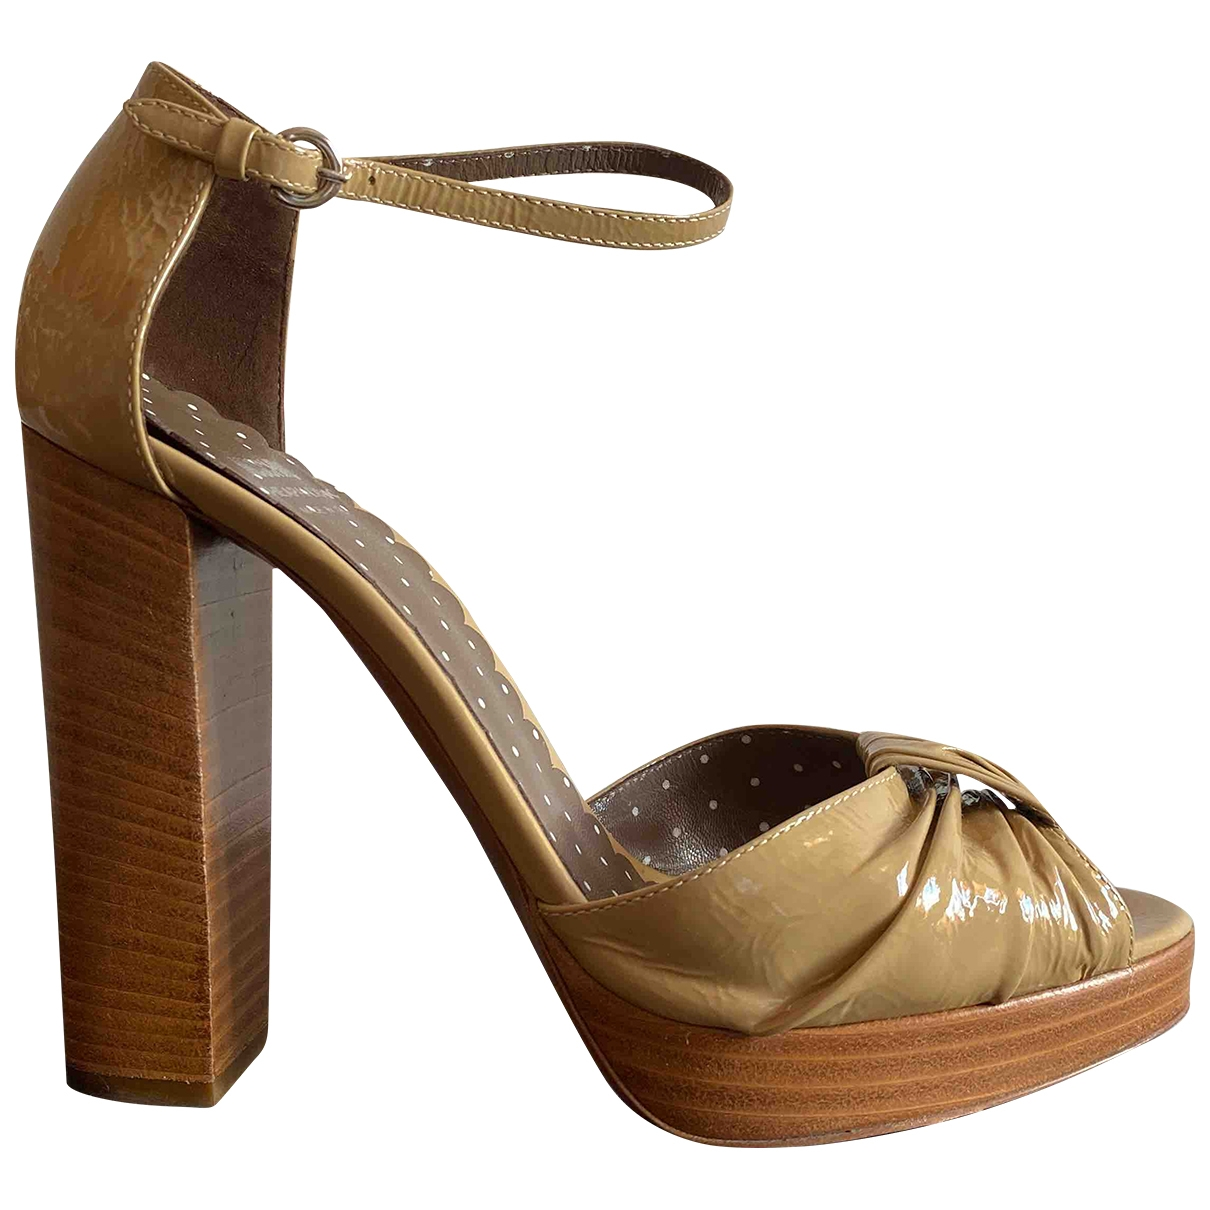 Moschino Cheap And Chic \N Sandalen in  Kamel Lackleder